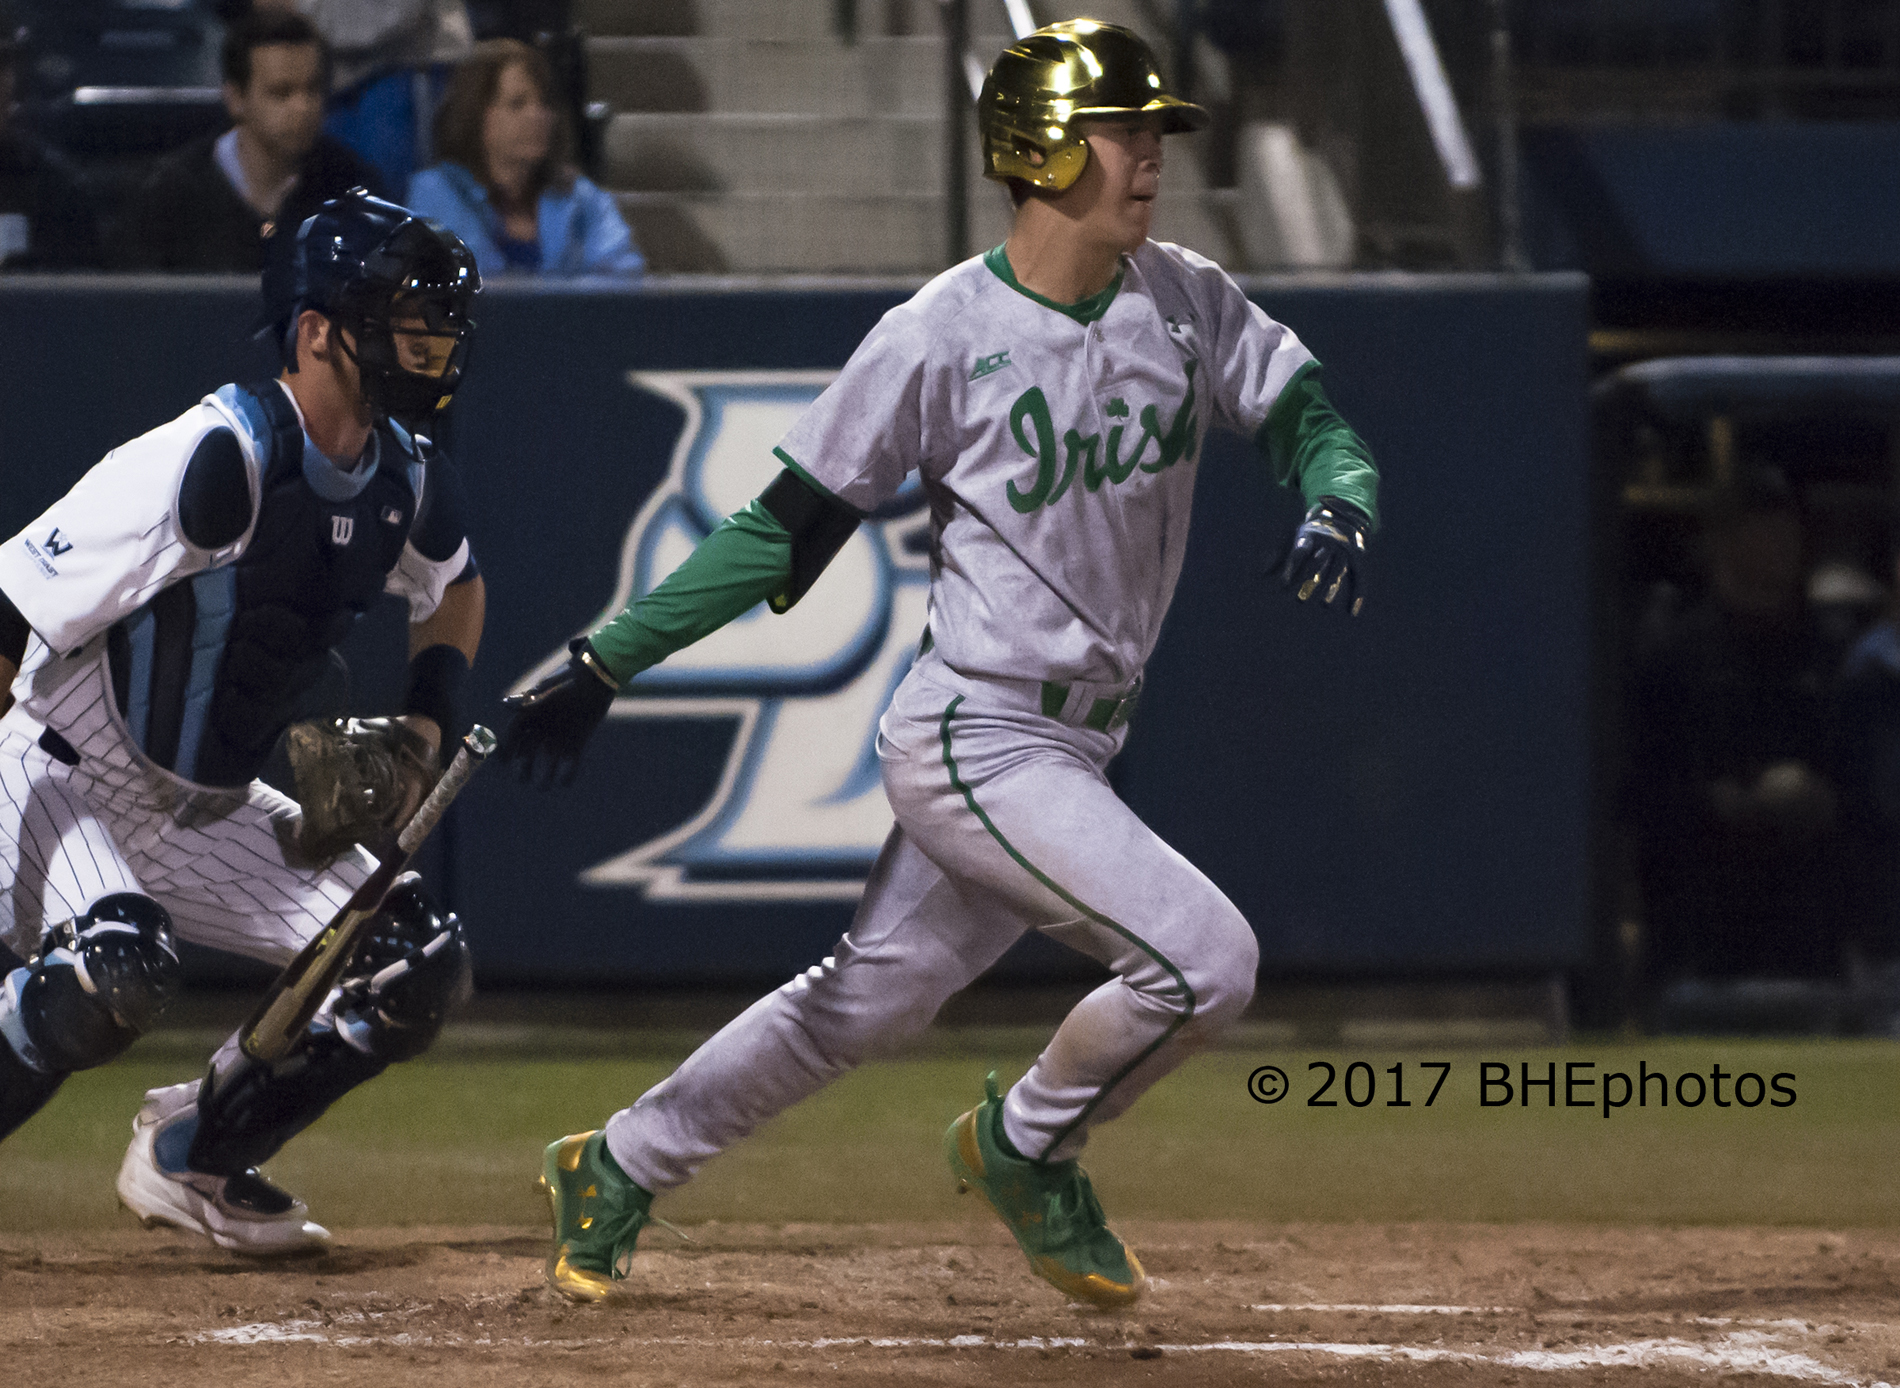 sports shoes 49263 5a557 Notre Dame releases 2018 Schedule - College Baseball Daily